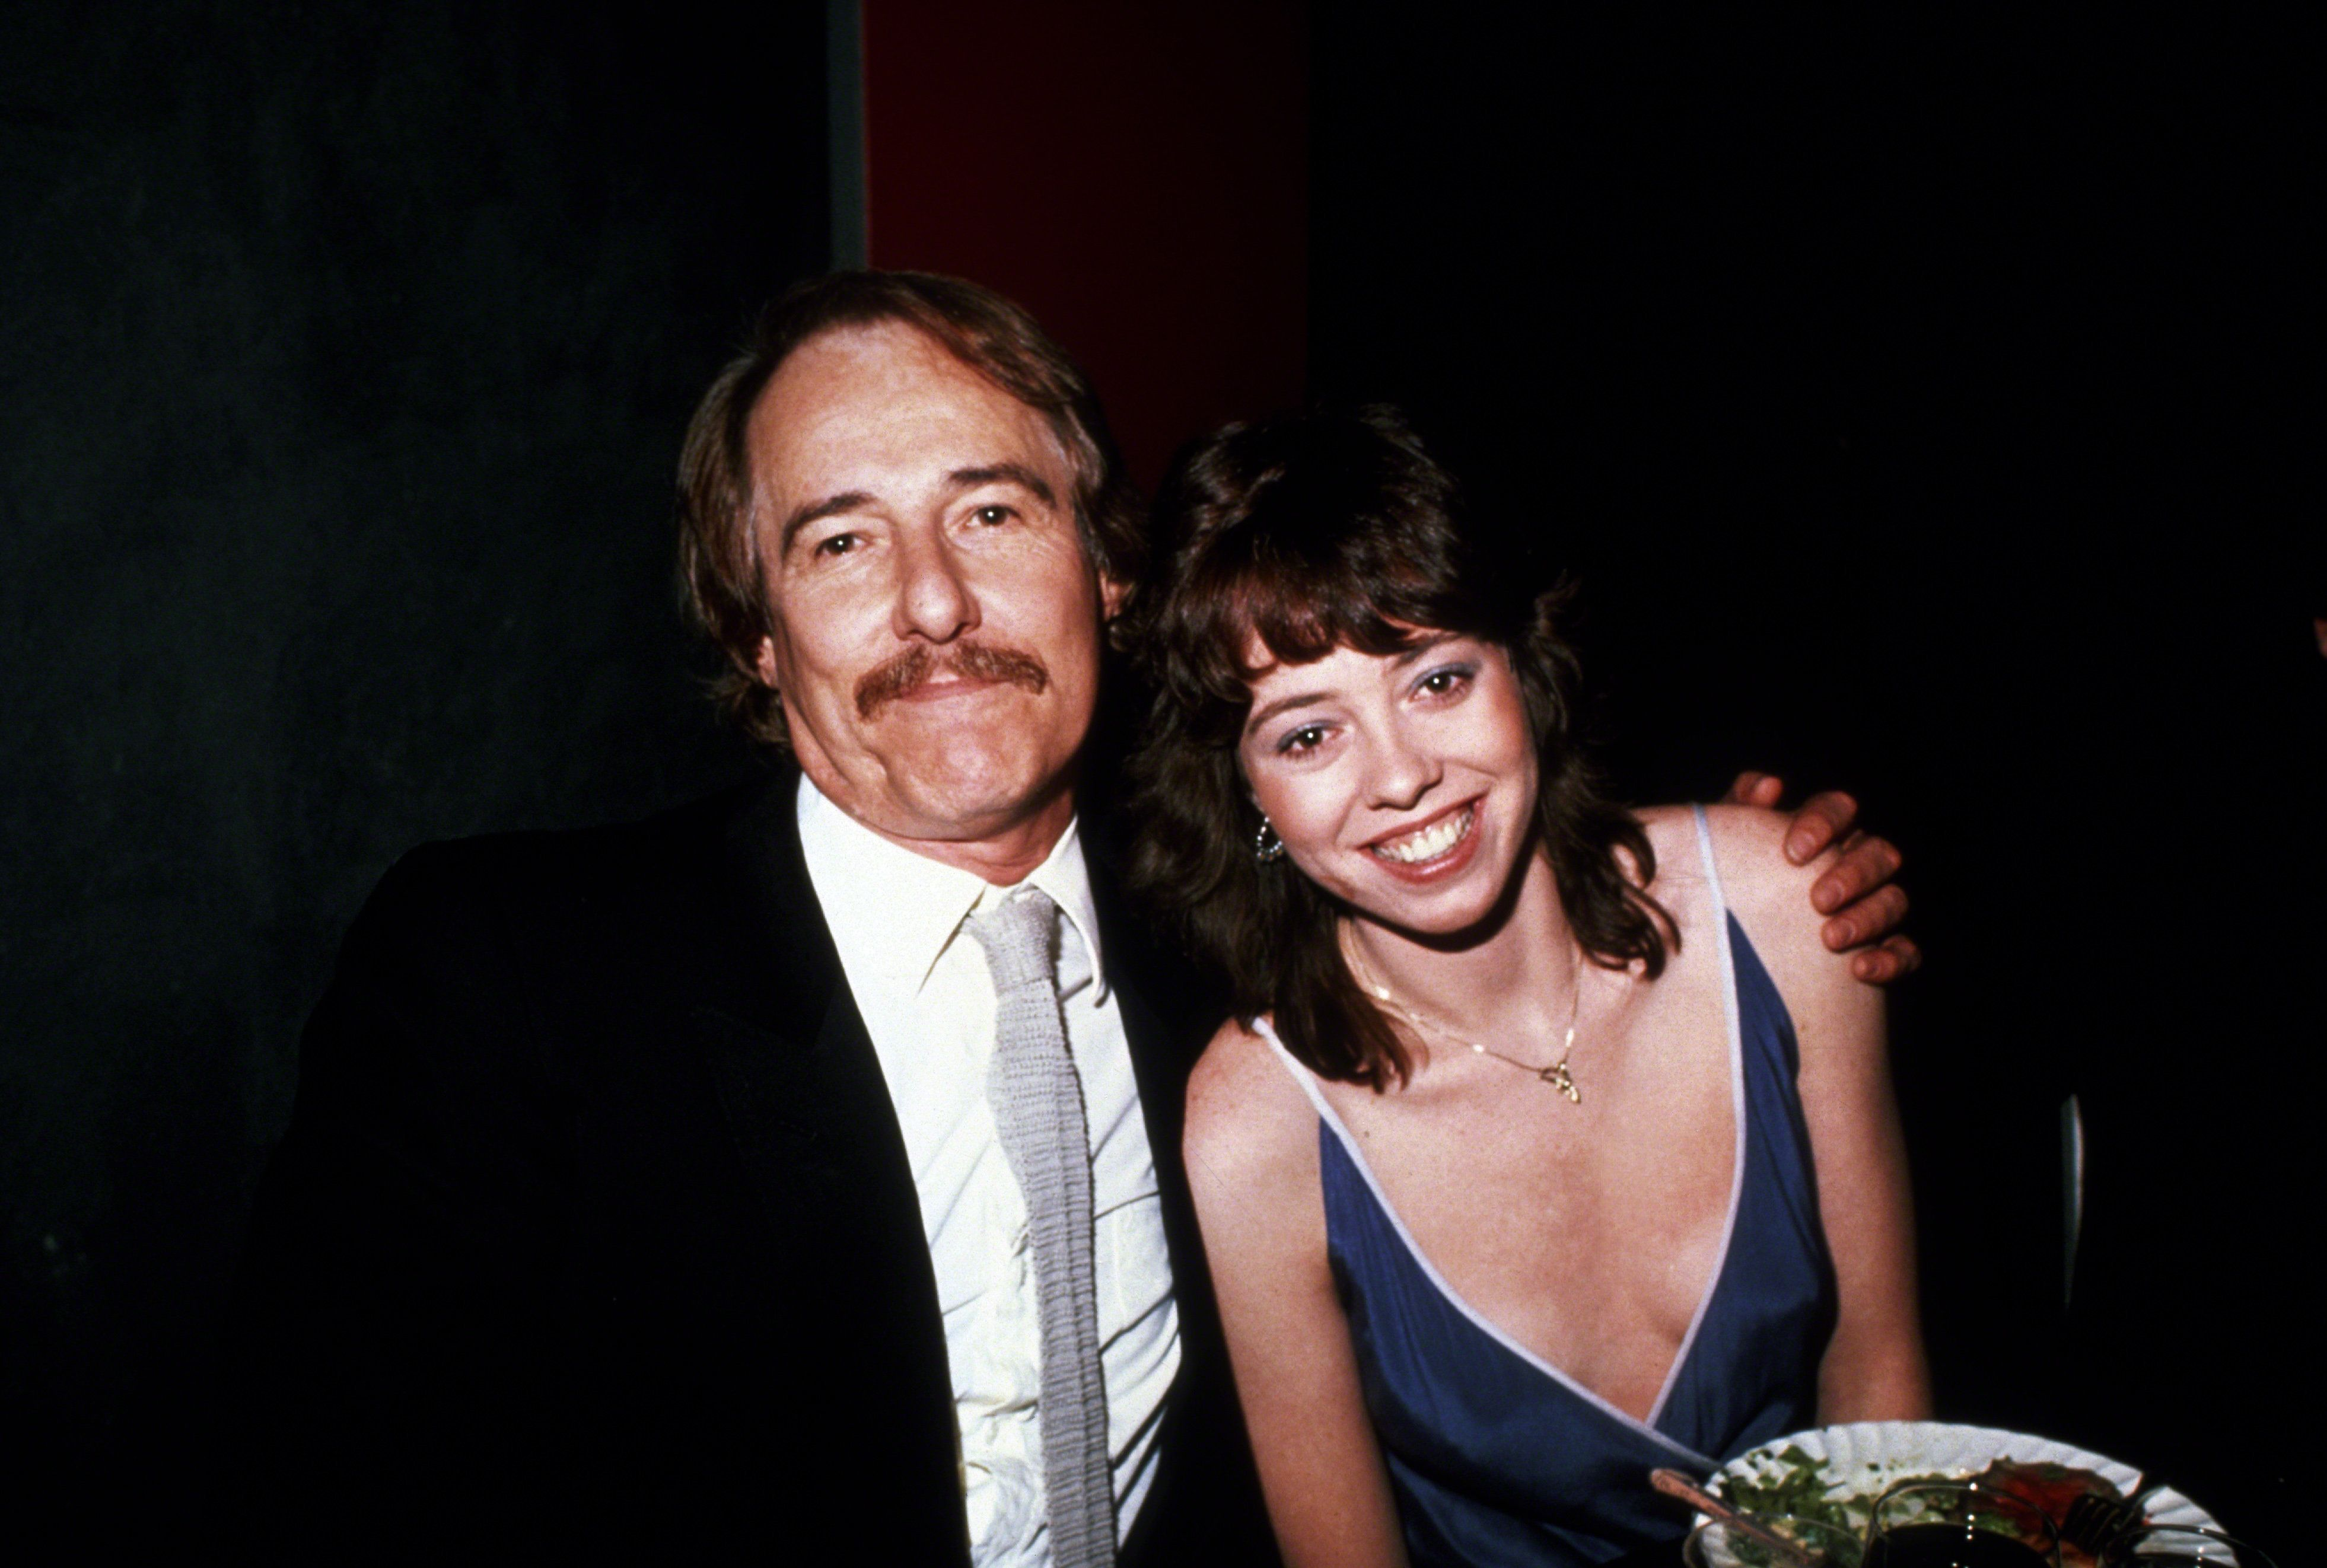 Mackenzie Phillips and father John Phillips circa 1981, a few years after Mackenzie says their sexual relationship began